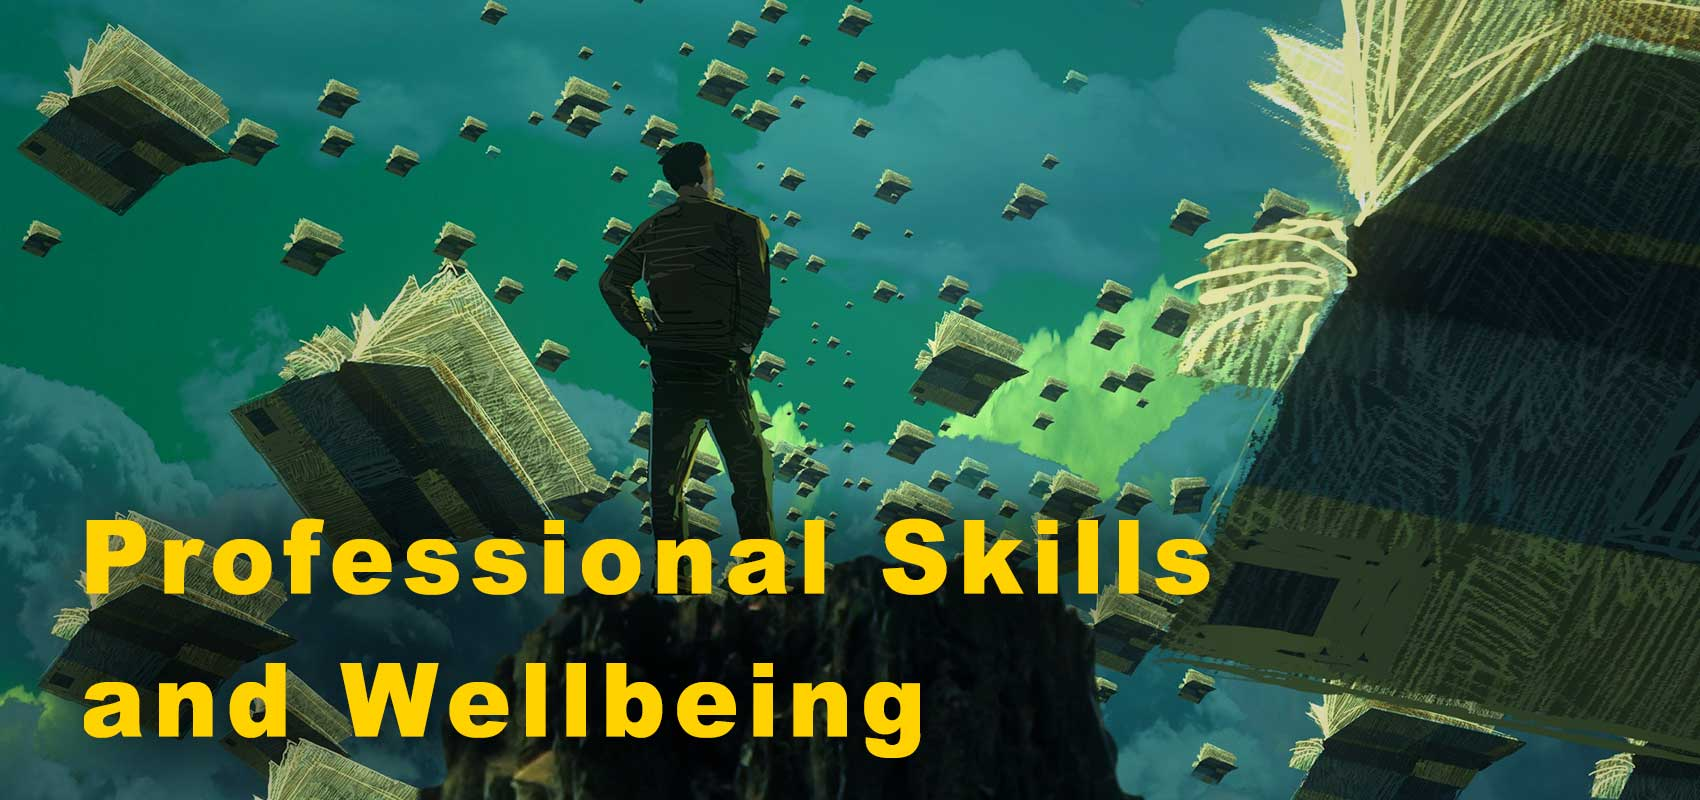 Professional Skills and Wellbeing